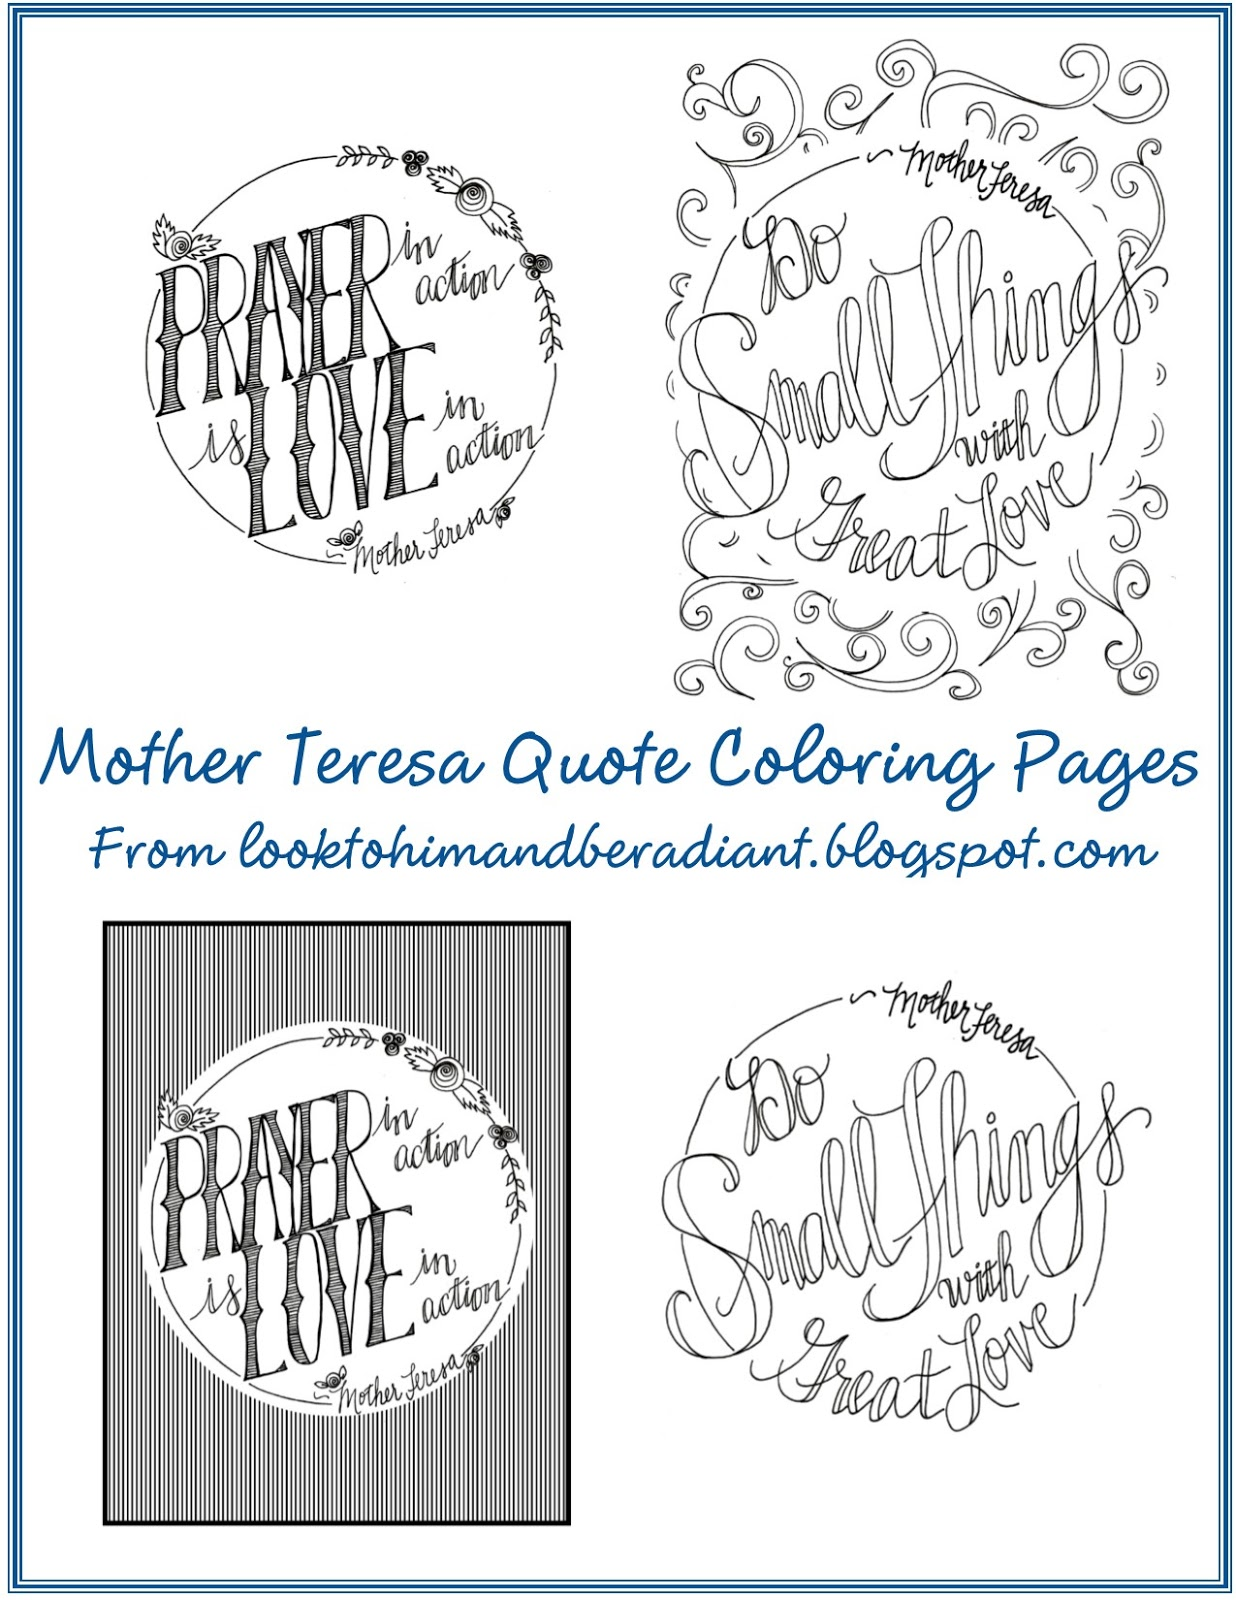 Of Mother Teresa Quote Coloring Pages It Was No Hardship To Be Inspired Create A Few More Thanks Some Back School Inservice Doodling Time